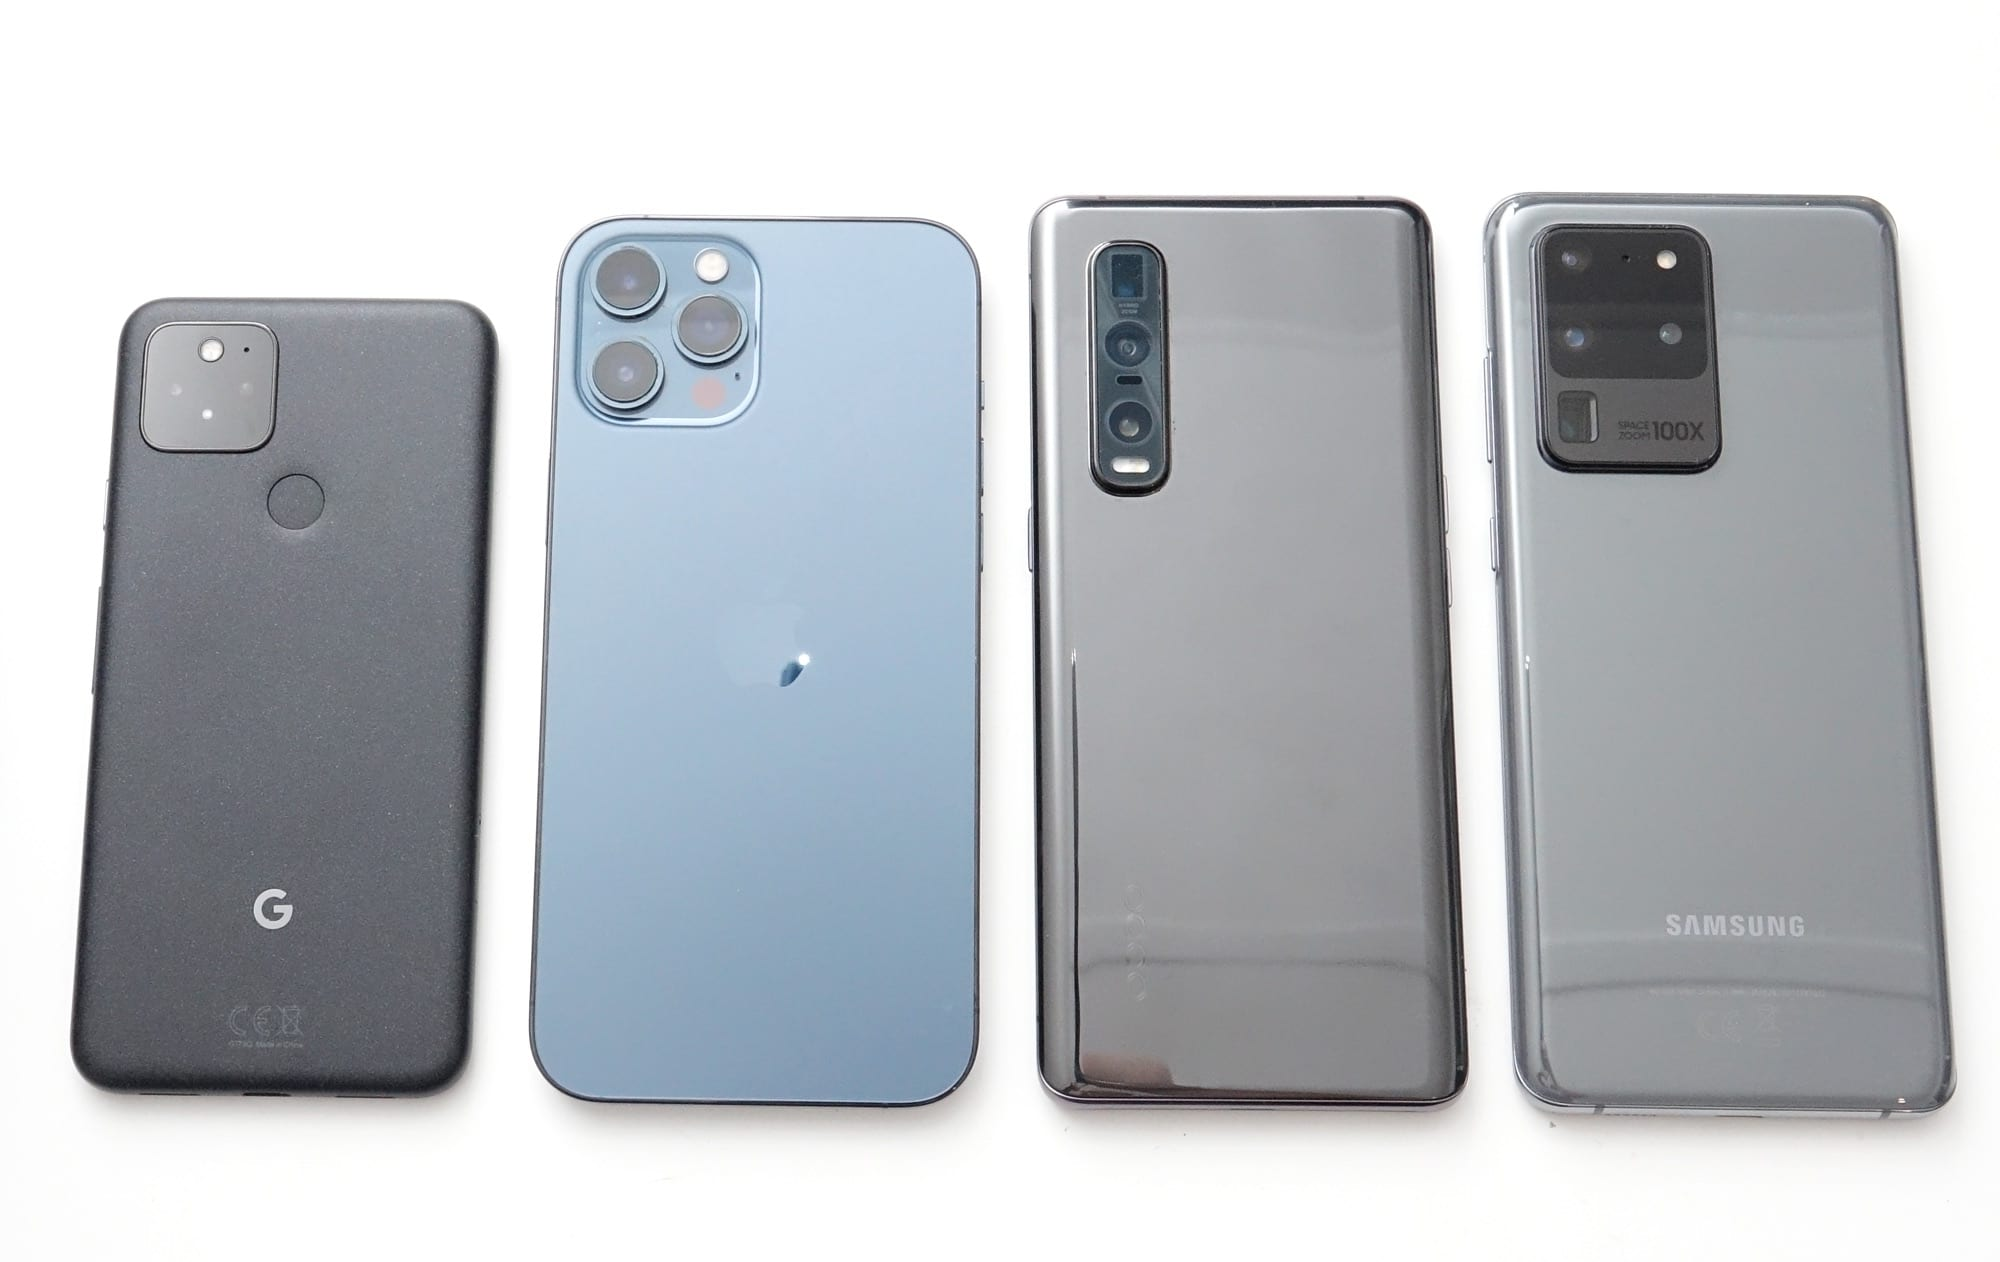 The best phone cameras of 2020 from left to right: Google Pixel 5, Apple iPhone 12 Pro Max, Oppo Find X2 Pro, and Samsung Galaxy S20 Ultra.